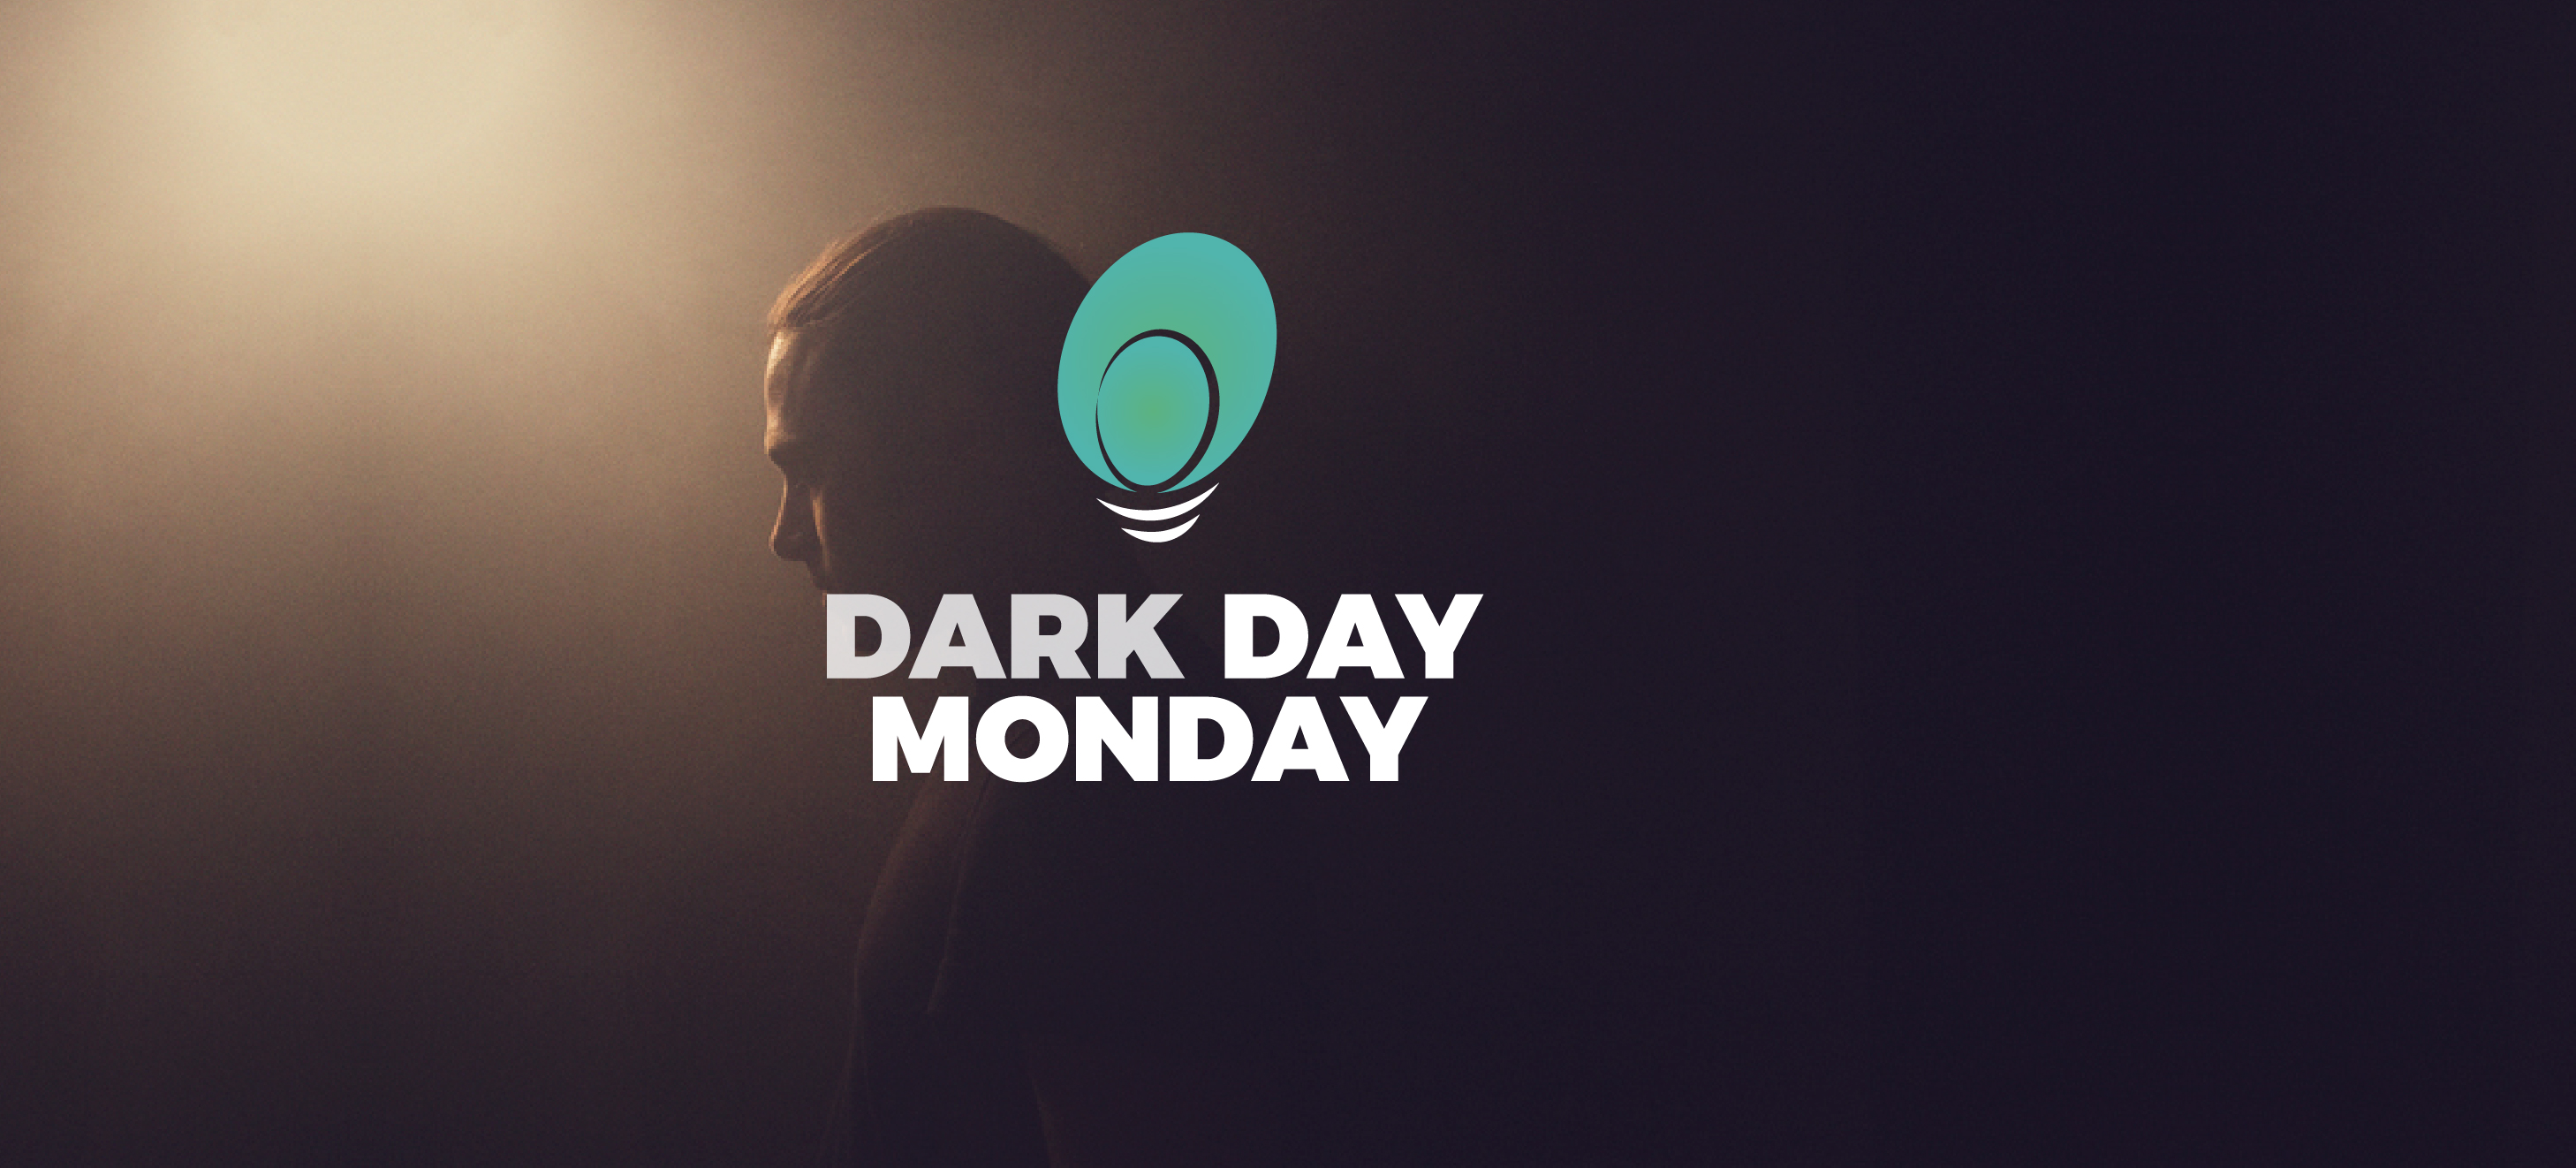 DARKDAY MONDAYModified Template-01